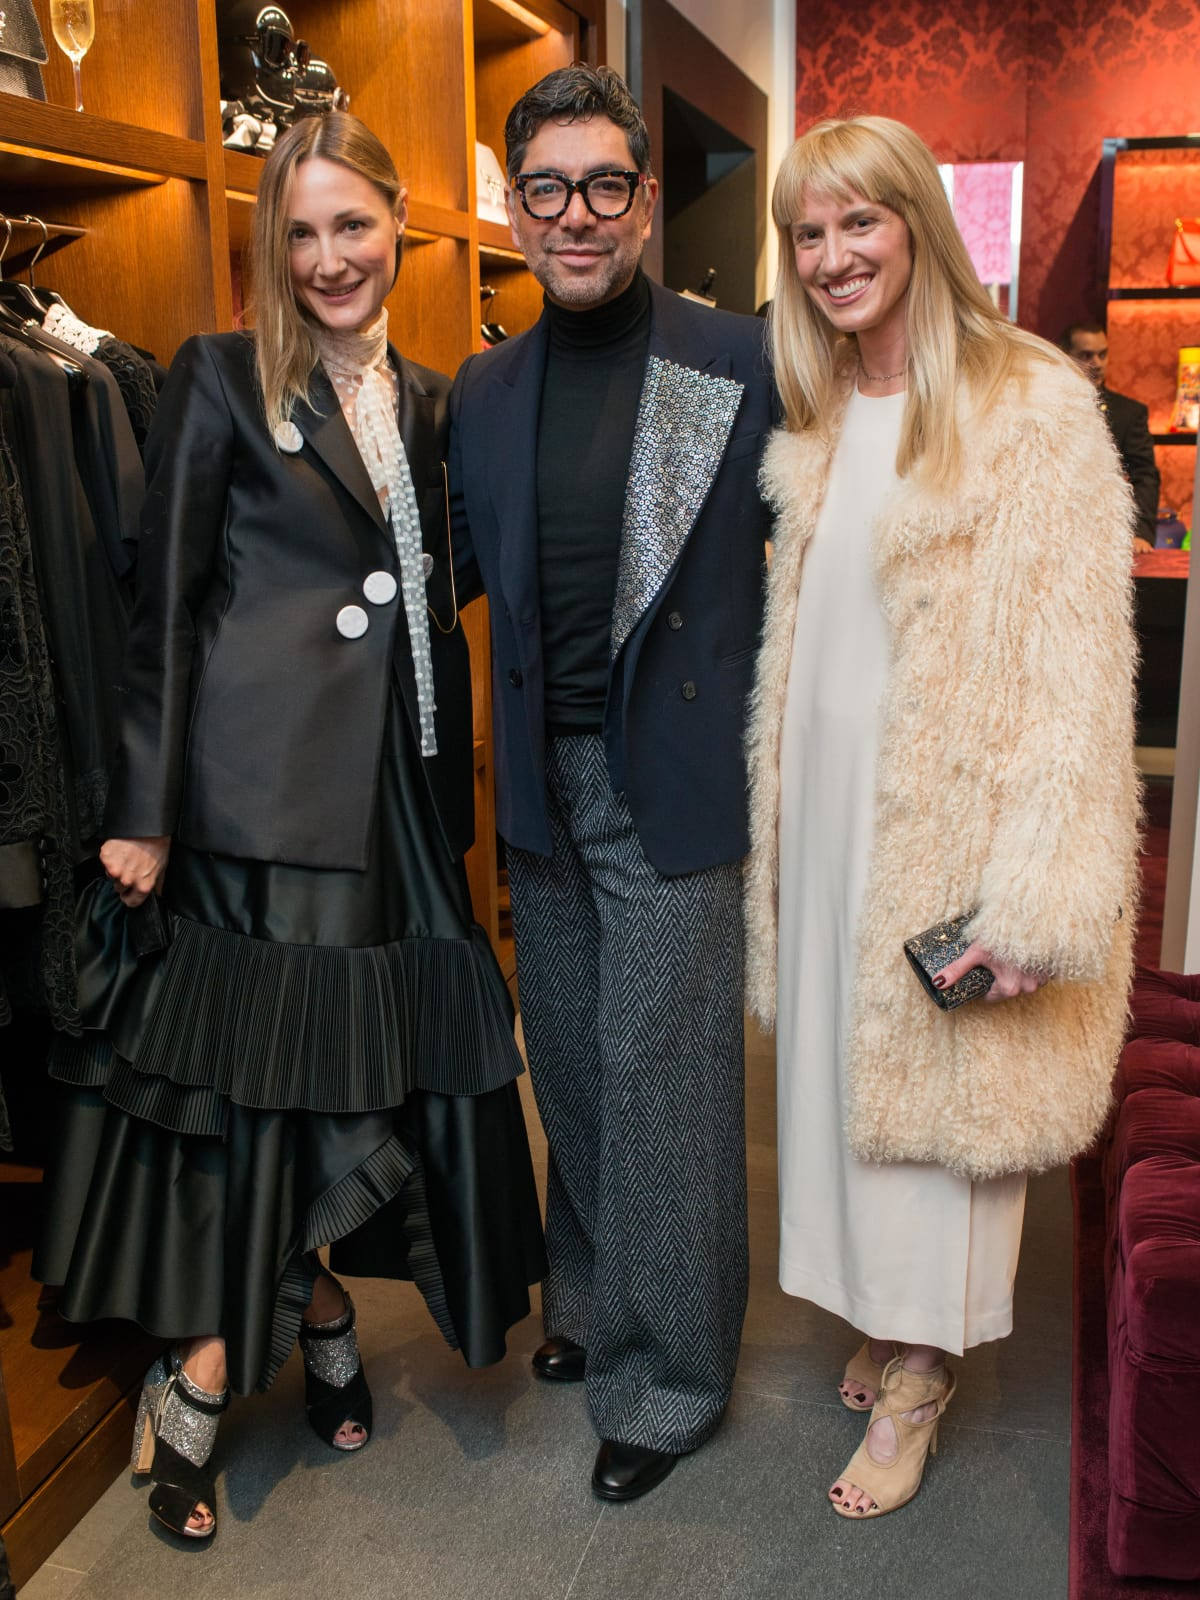 News, Shelby, Dolce & Gabbana dinner, Nov. 2015, Tatiana Massey, Ceron, Chris Goins